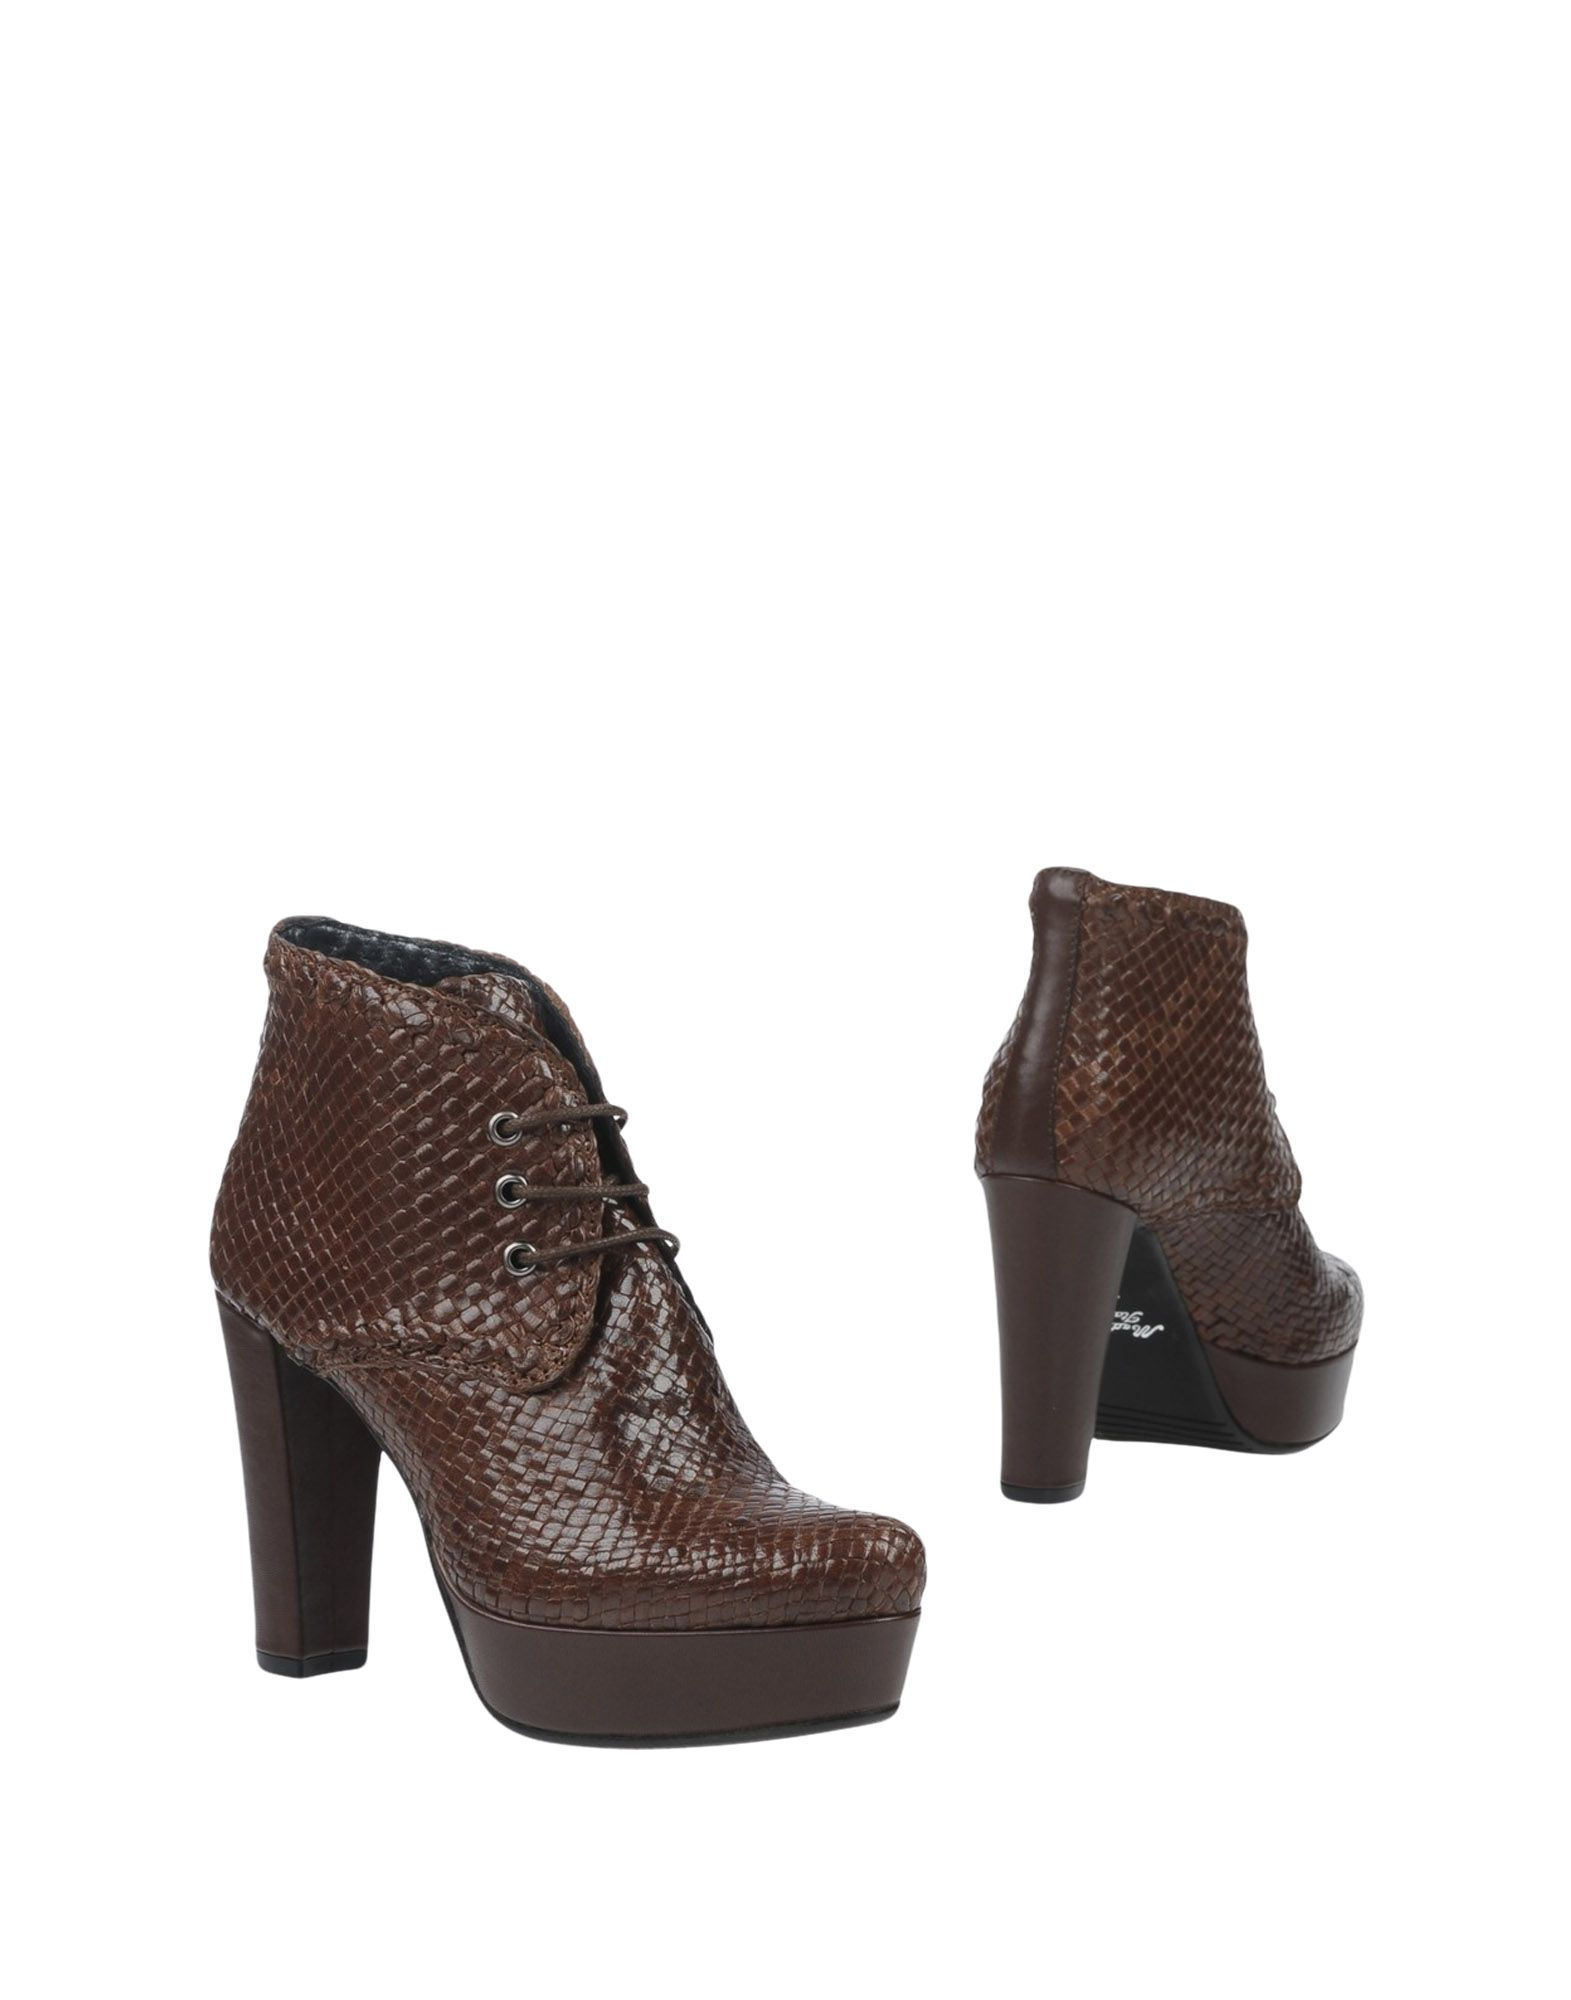 Chiara Luciani Ankle Boot - Boots Women Chiara Luciani Ankle Boots - online on  Australia - 11323715MO 52d41a